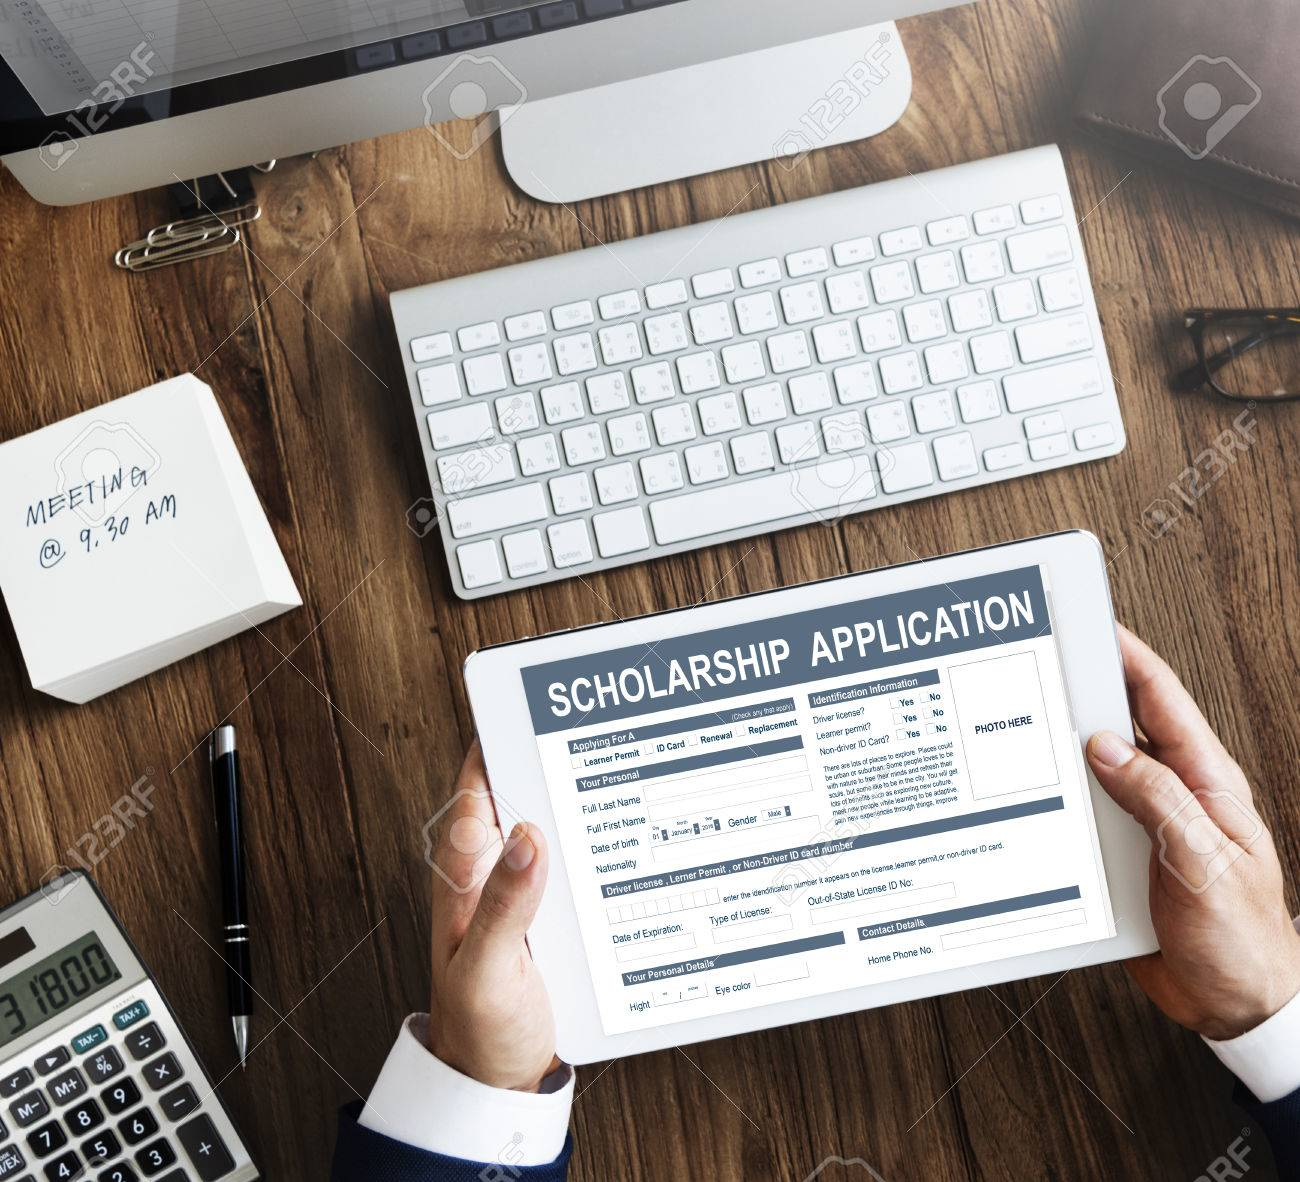 Scholarship Application Form Foundation Concept Stock Photo Picture And Royalty Free Image Image 64934214